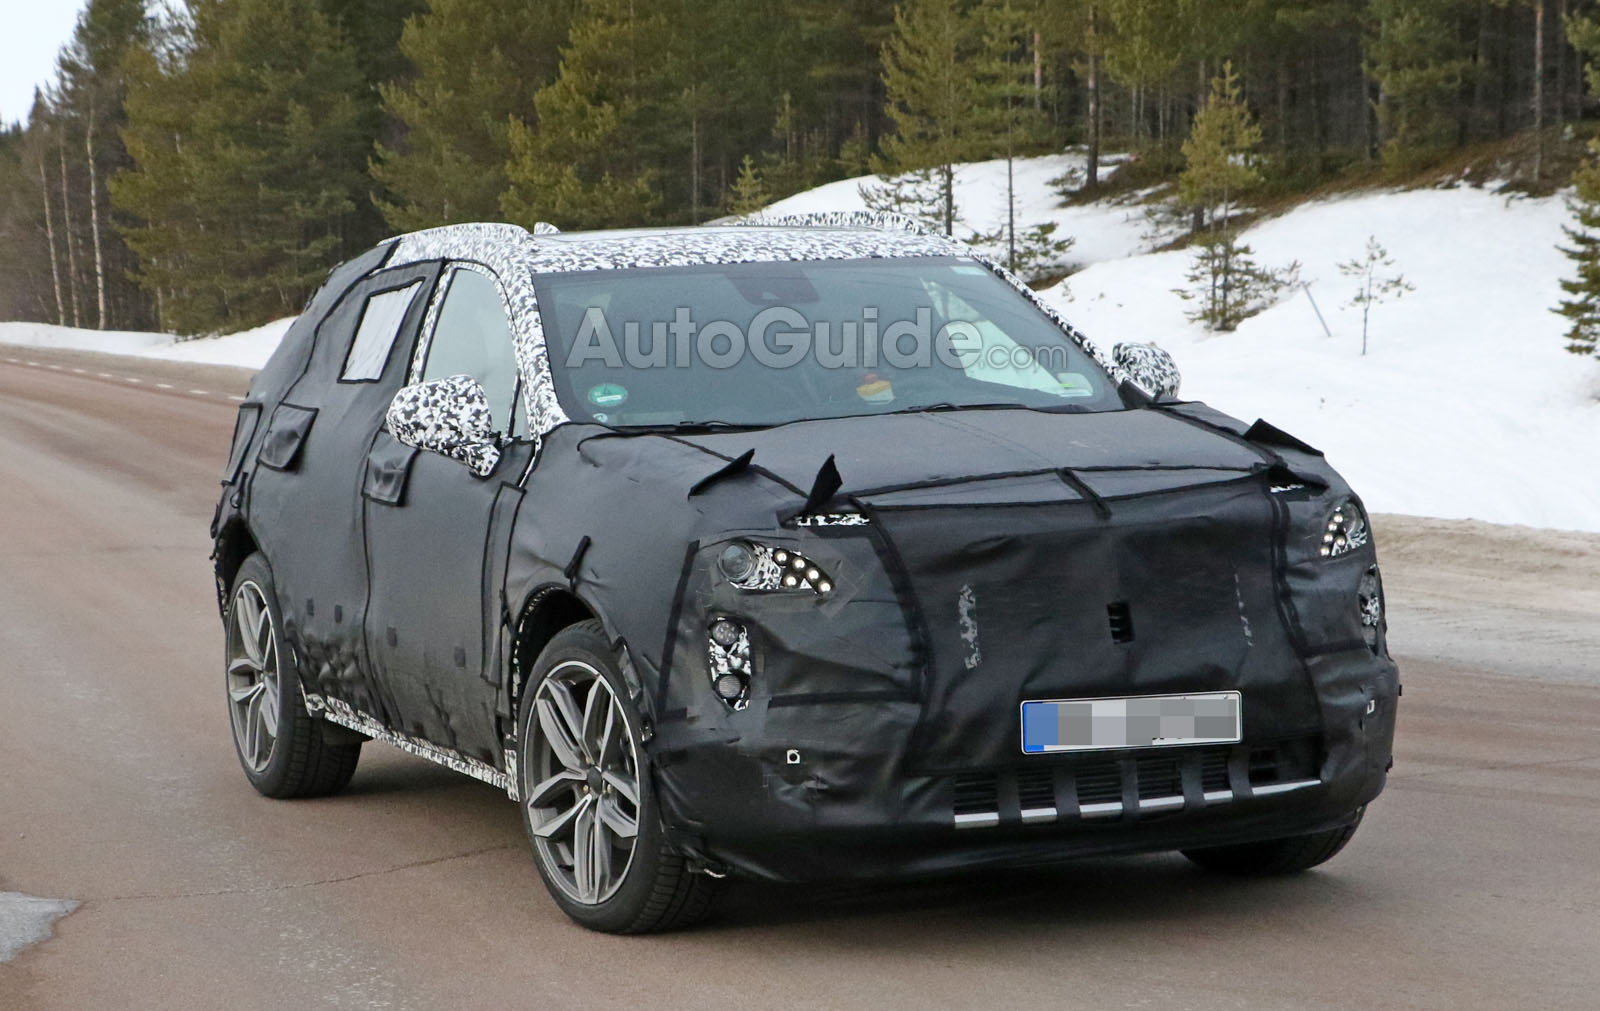 Cadillac Xt3 Compact Crossover Spied Testing For The First